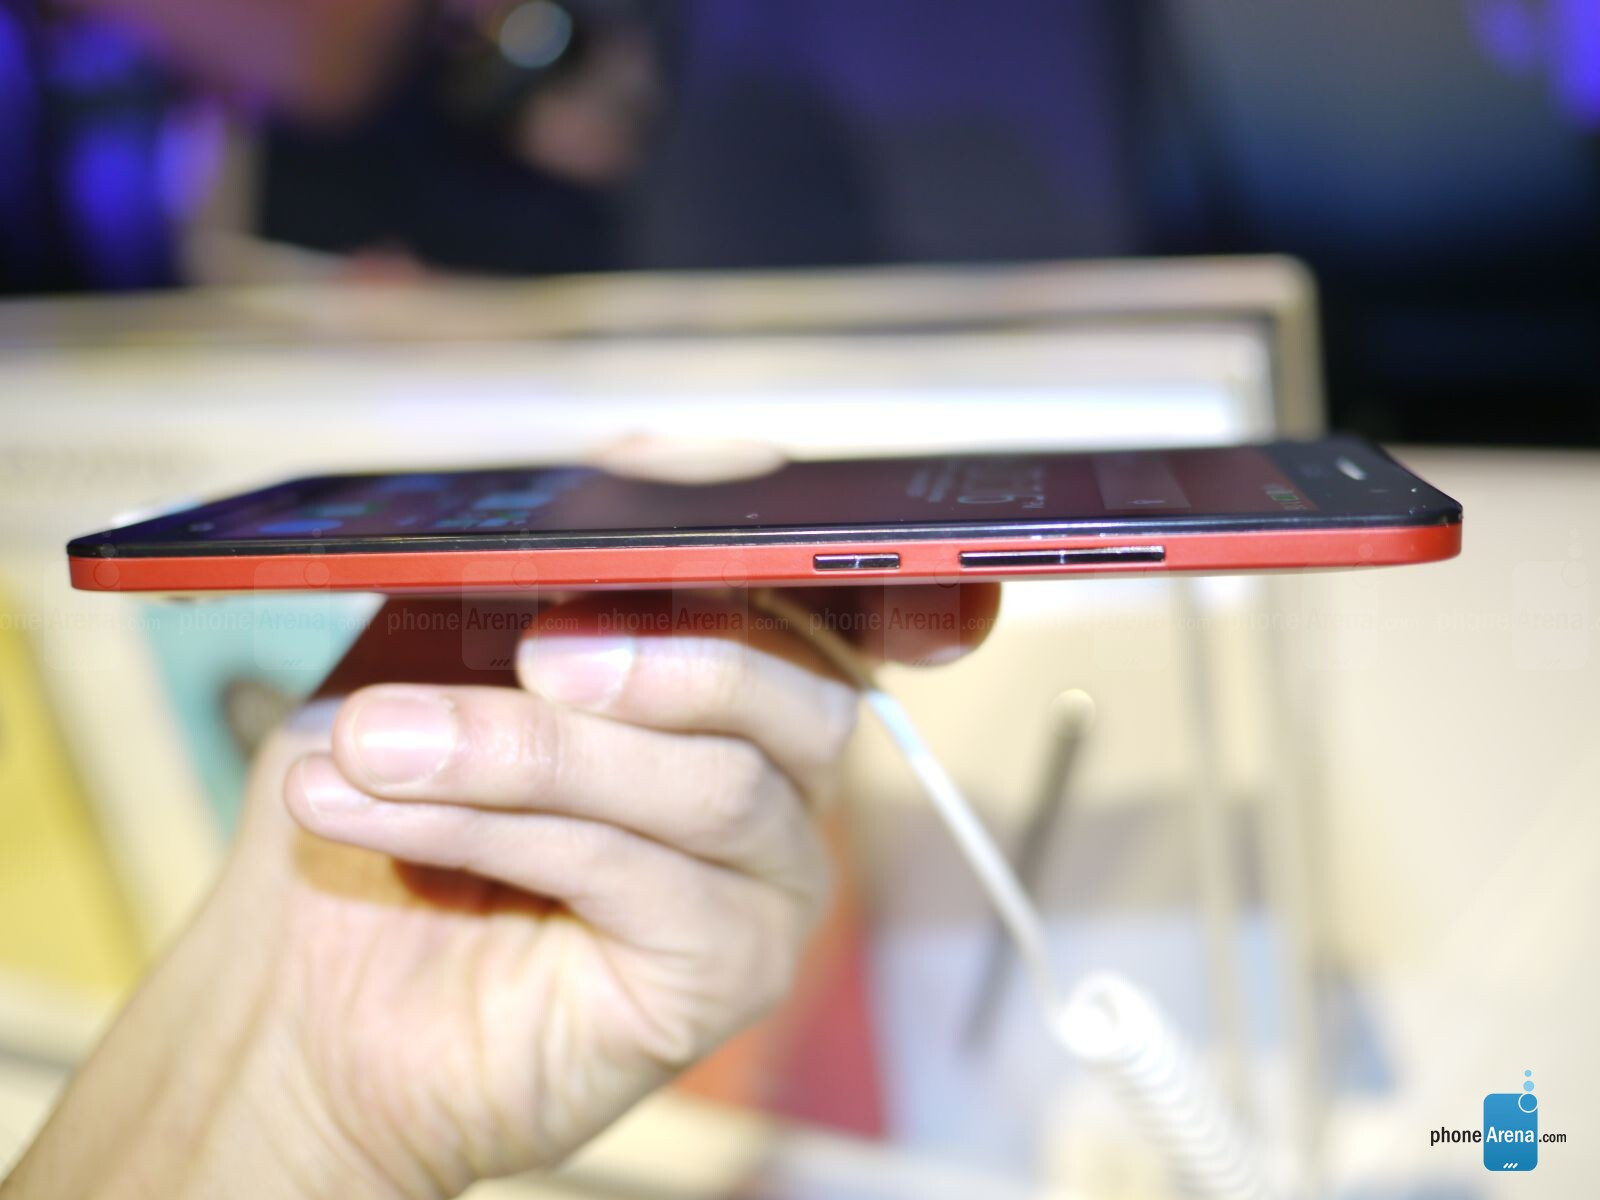 The Asus ZenFone 6 - Asus ZenFone 6 hands-on